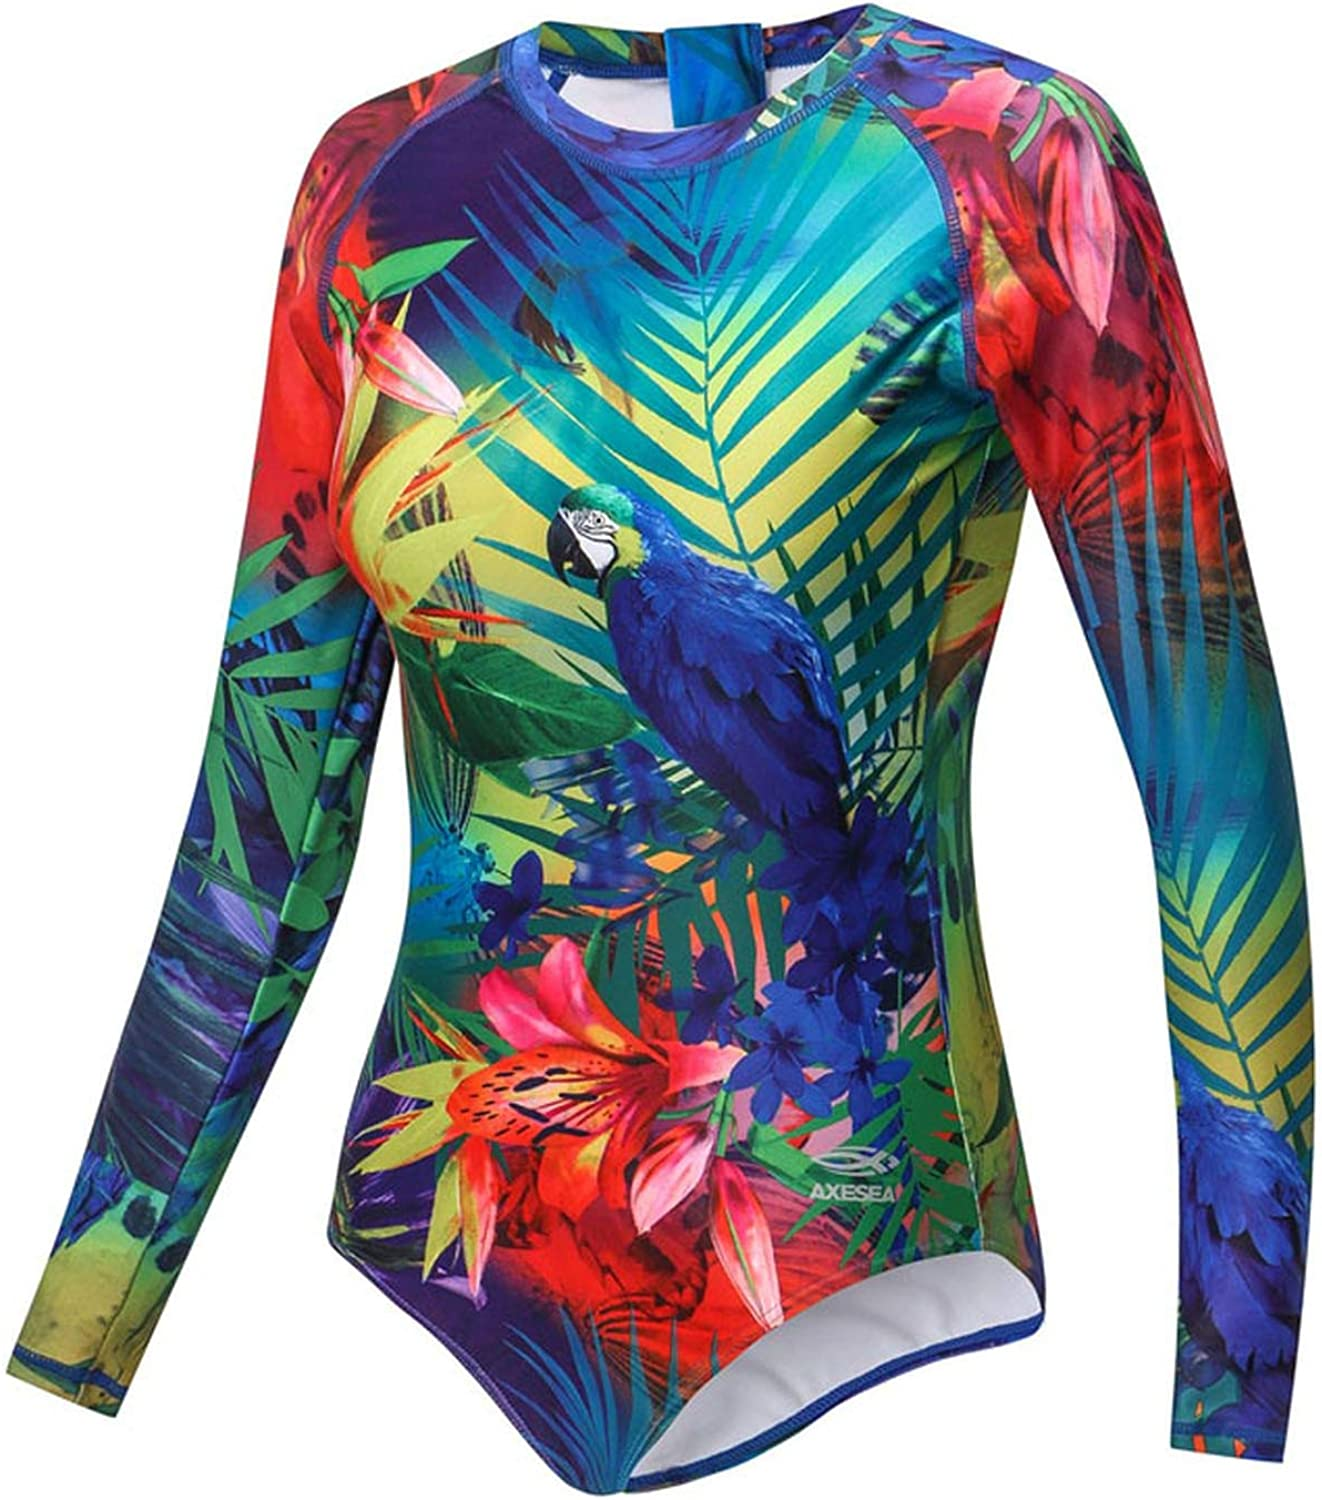 ONLYFORME1 Women Rashguard Long Sleeve OnePiece Swimwear Upf50+ Print Floral Back Zipper Surf Rash Guard